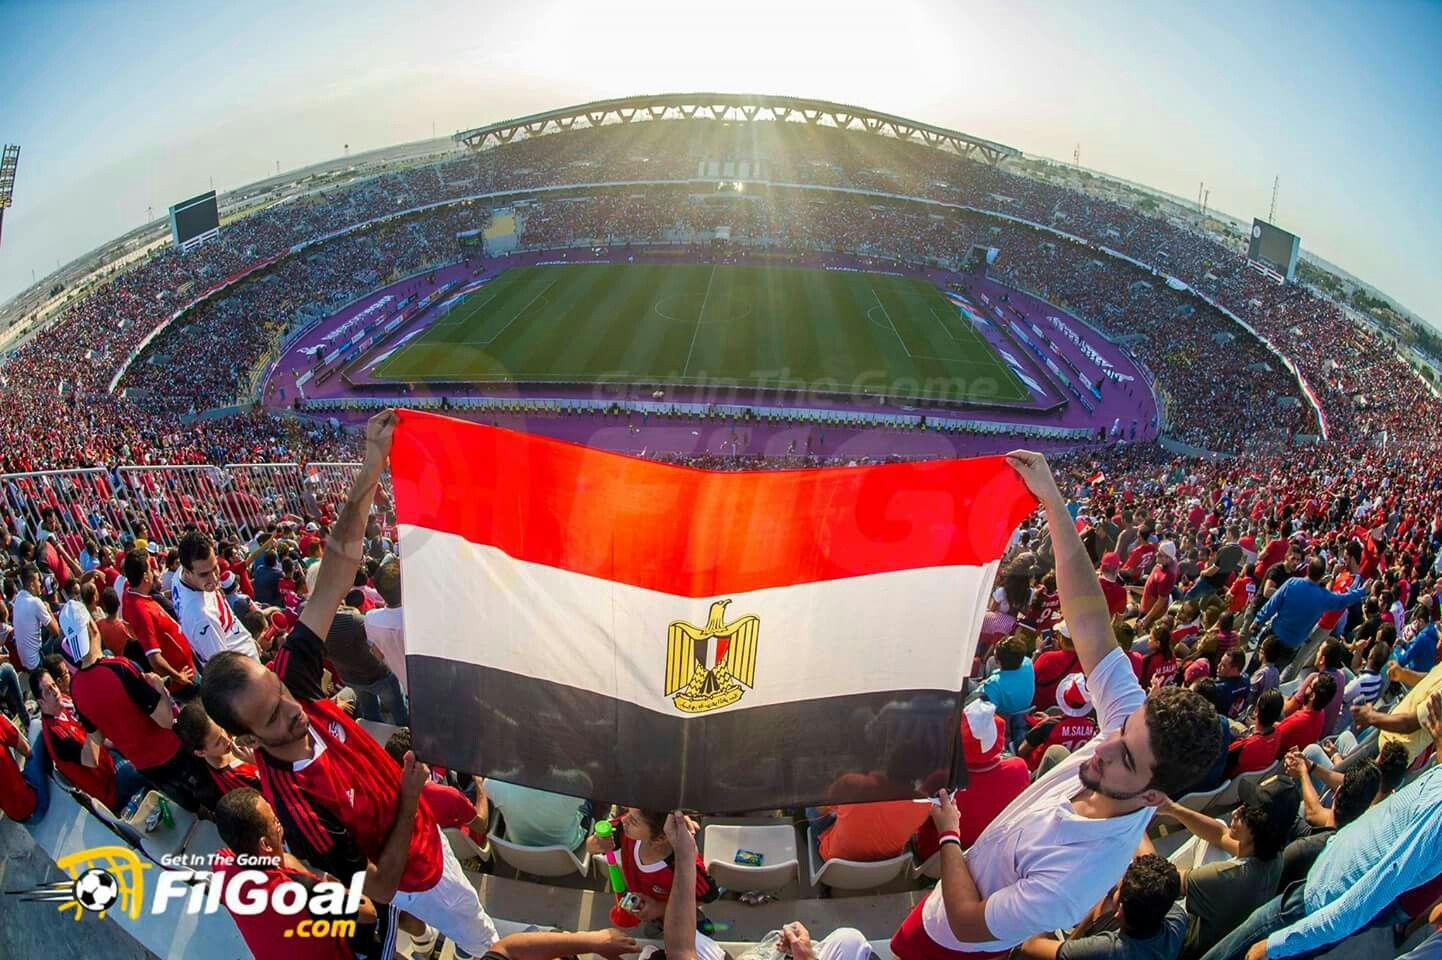 Simple Egypt World Cup 2018 - e5bdd5280eab7236d396058c5f48800f  Snapshot_837464 .jpg